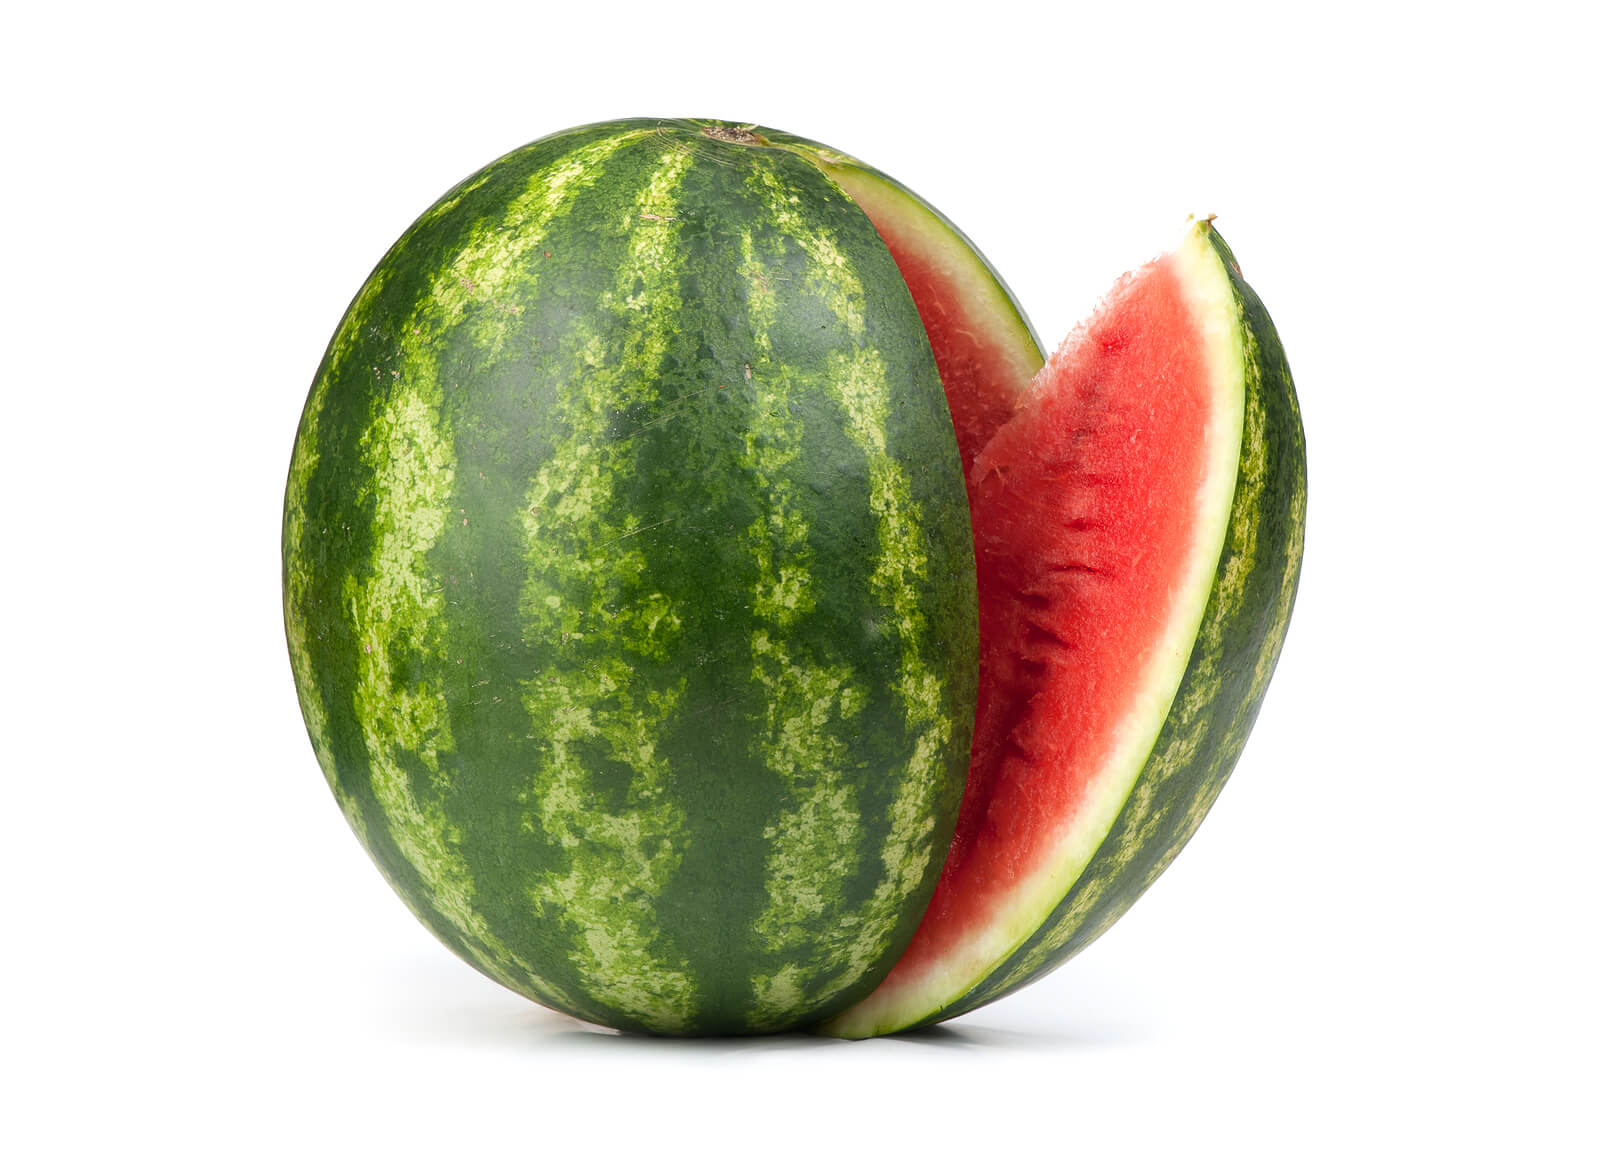 Watermelon Backgrounds on Wallpapers Vista